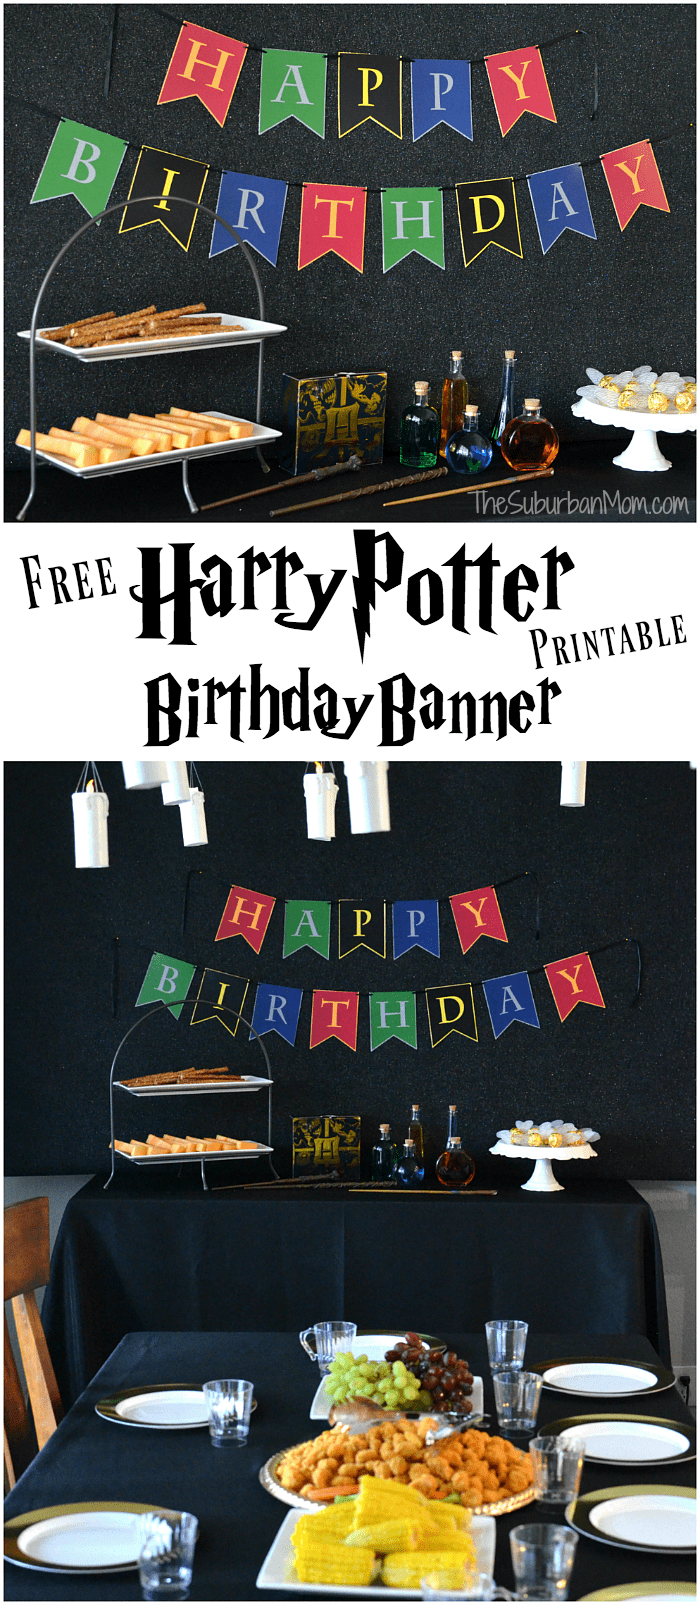 Harry Potter Birthday Banner Free Printable